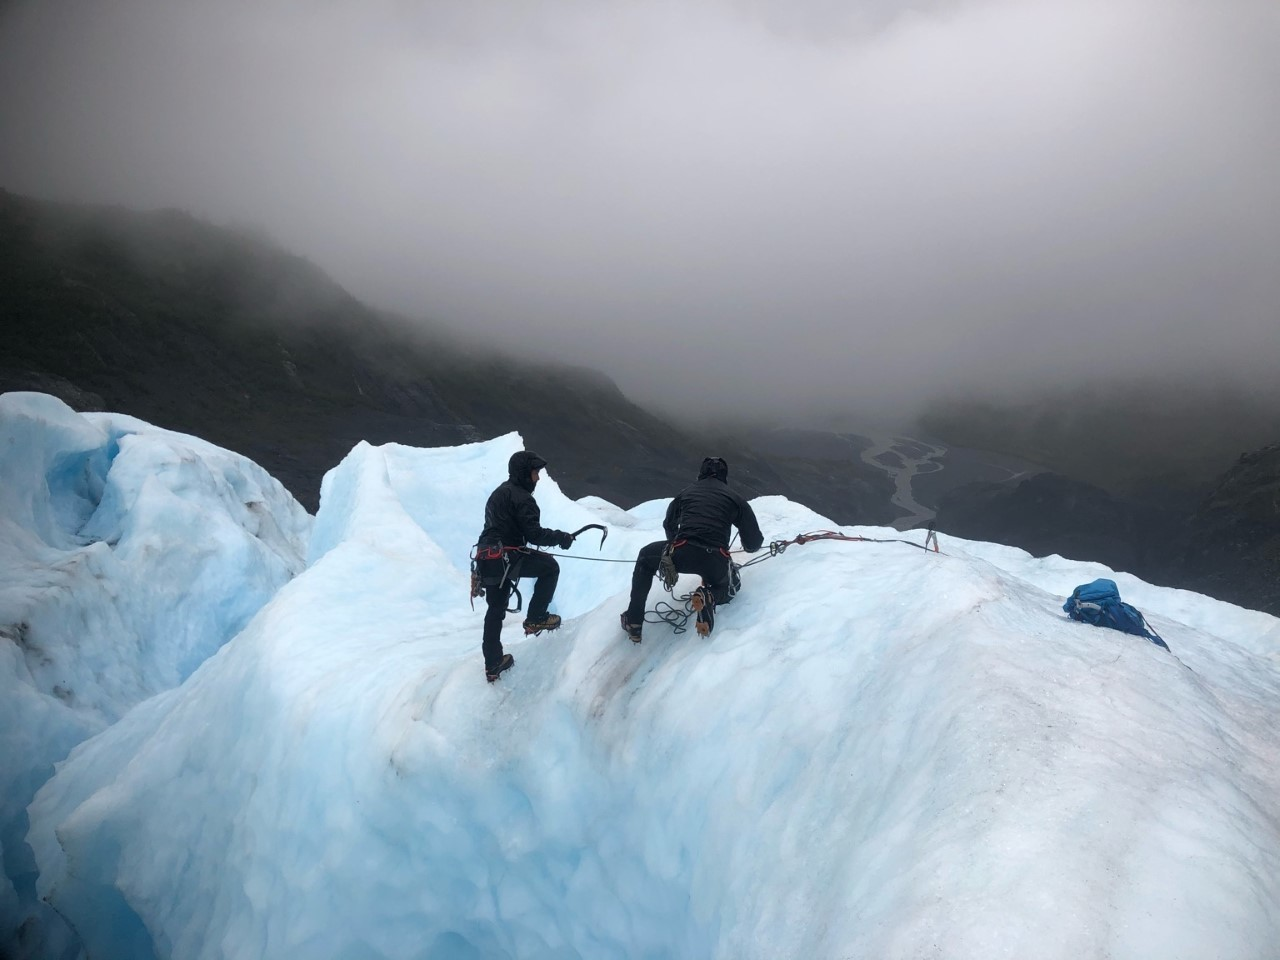 Green Berets with 1st Special Forces Group (Airborne) practice self-recovery from a glacial crevasse on Oct. 15, 2020, during Valor United 20, an Arctic warfare training exercise in Seward, Alaska. (Sgt. Kayla Hocker/Army)